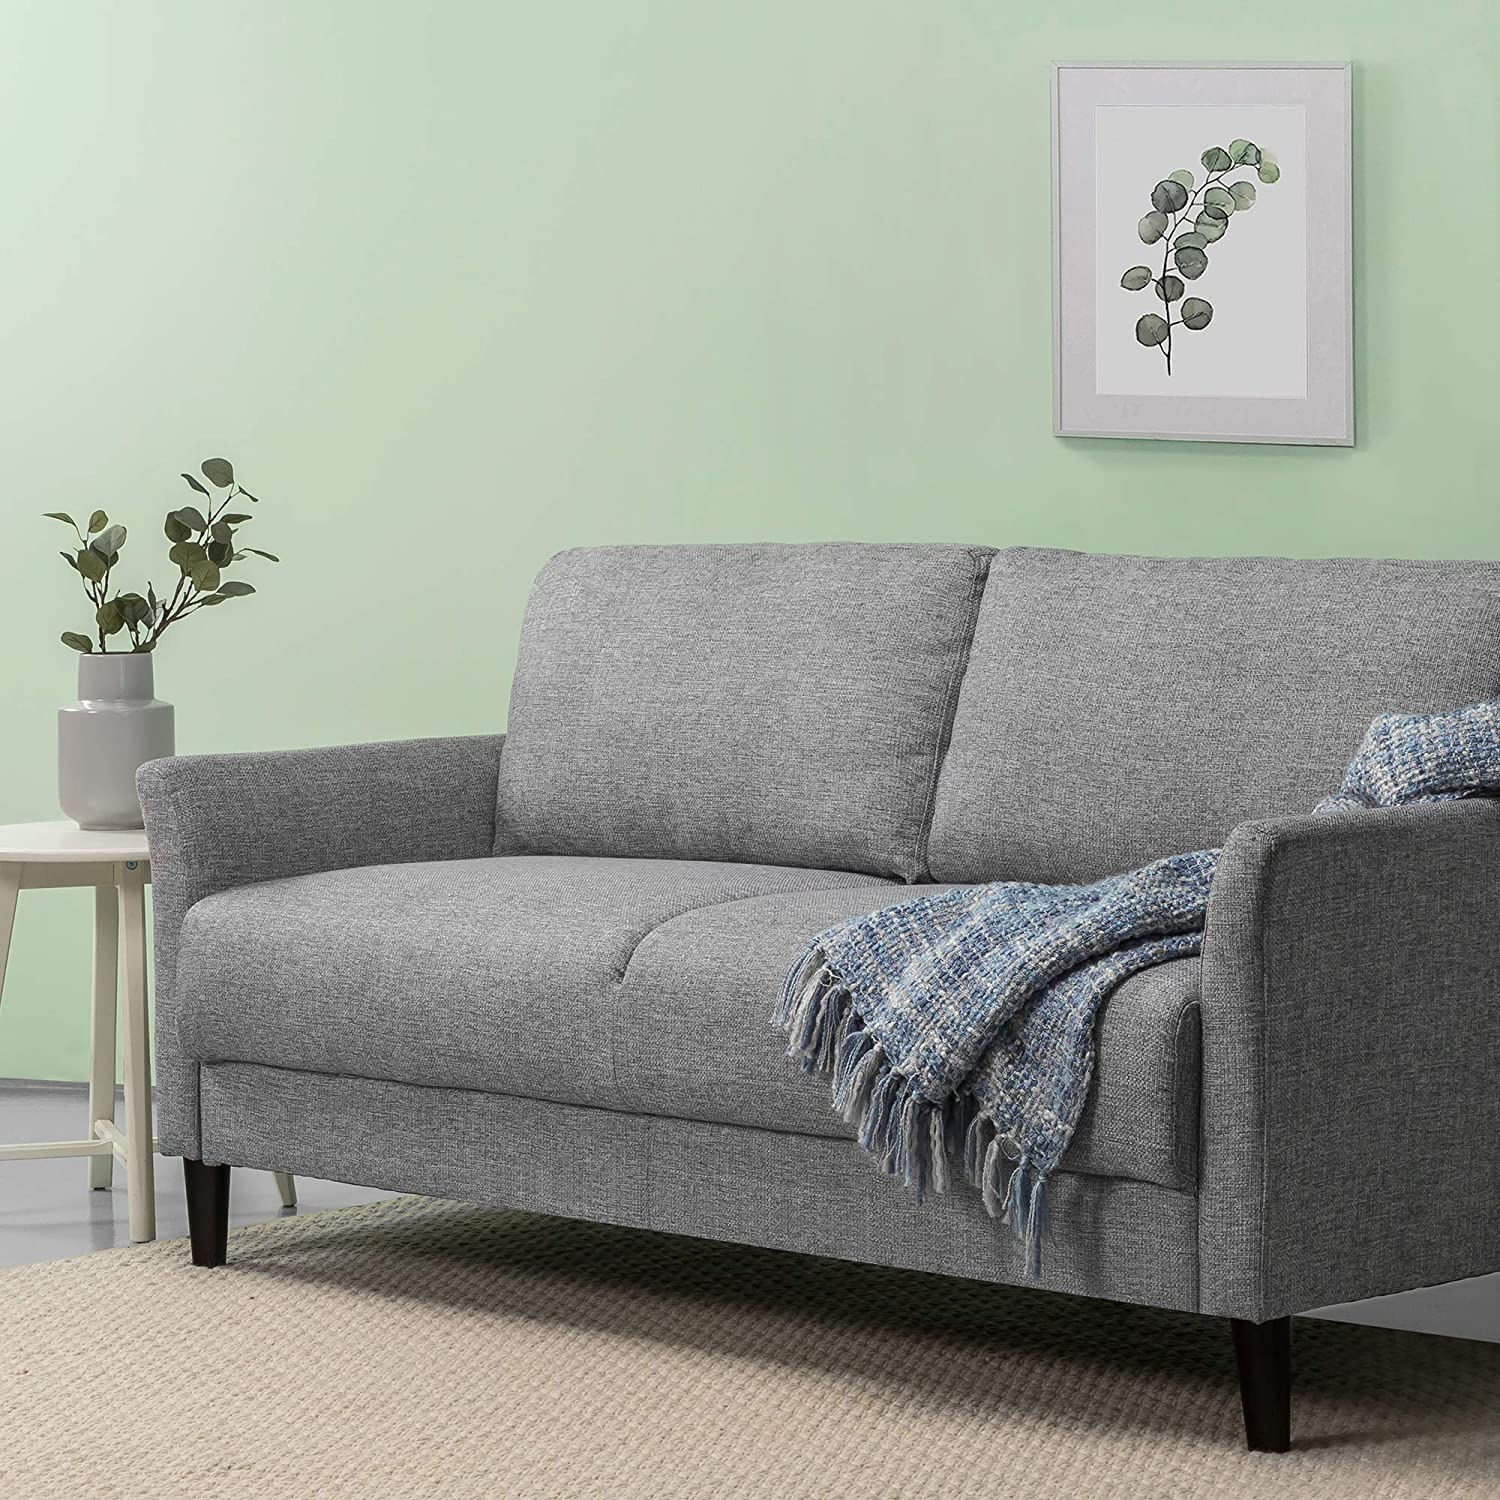 Amazon Com Zinus Jackie Sofa Couch Easy Tool Free Assembly Soft Grey Furniture Decor